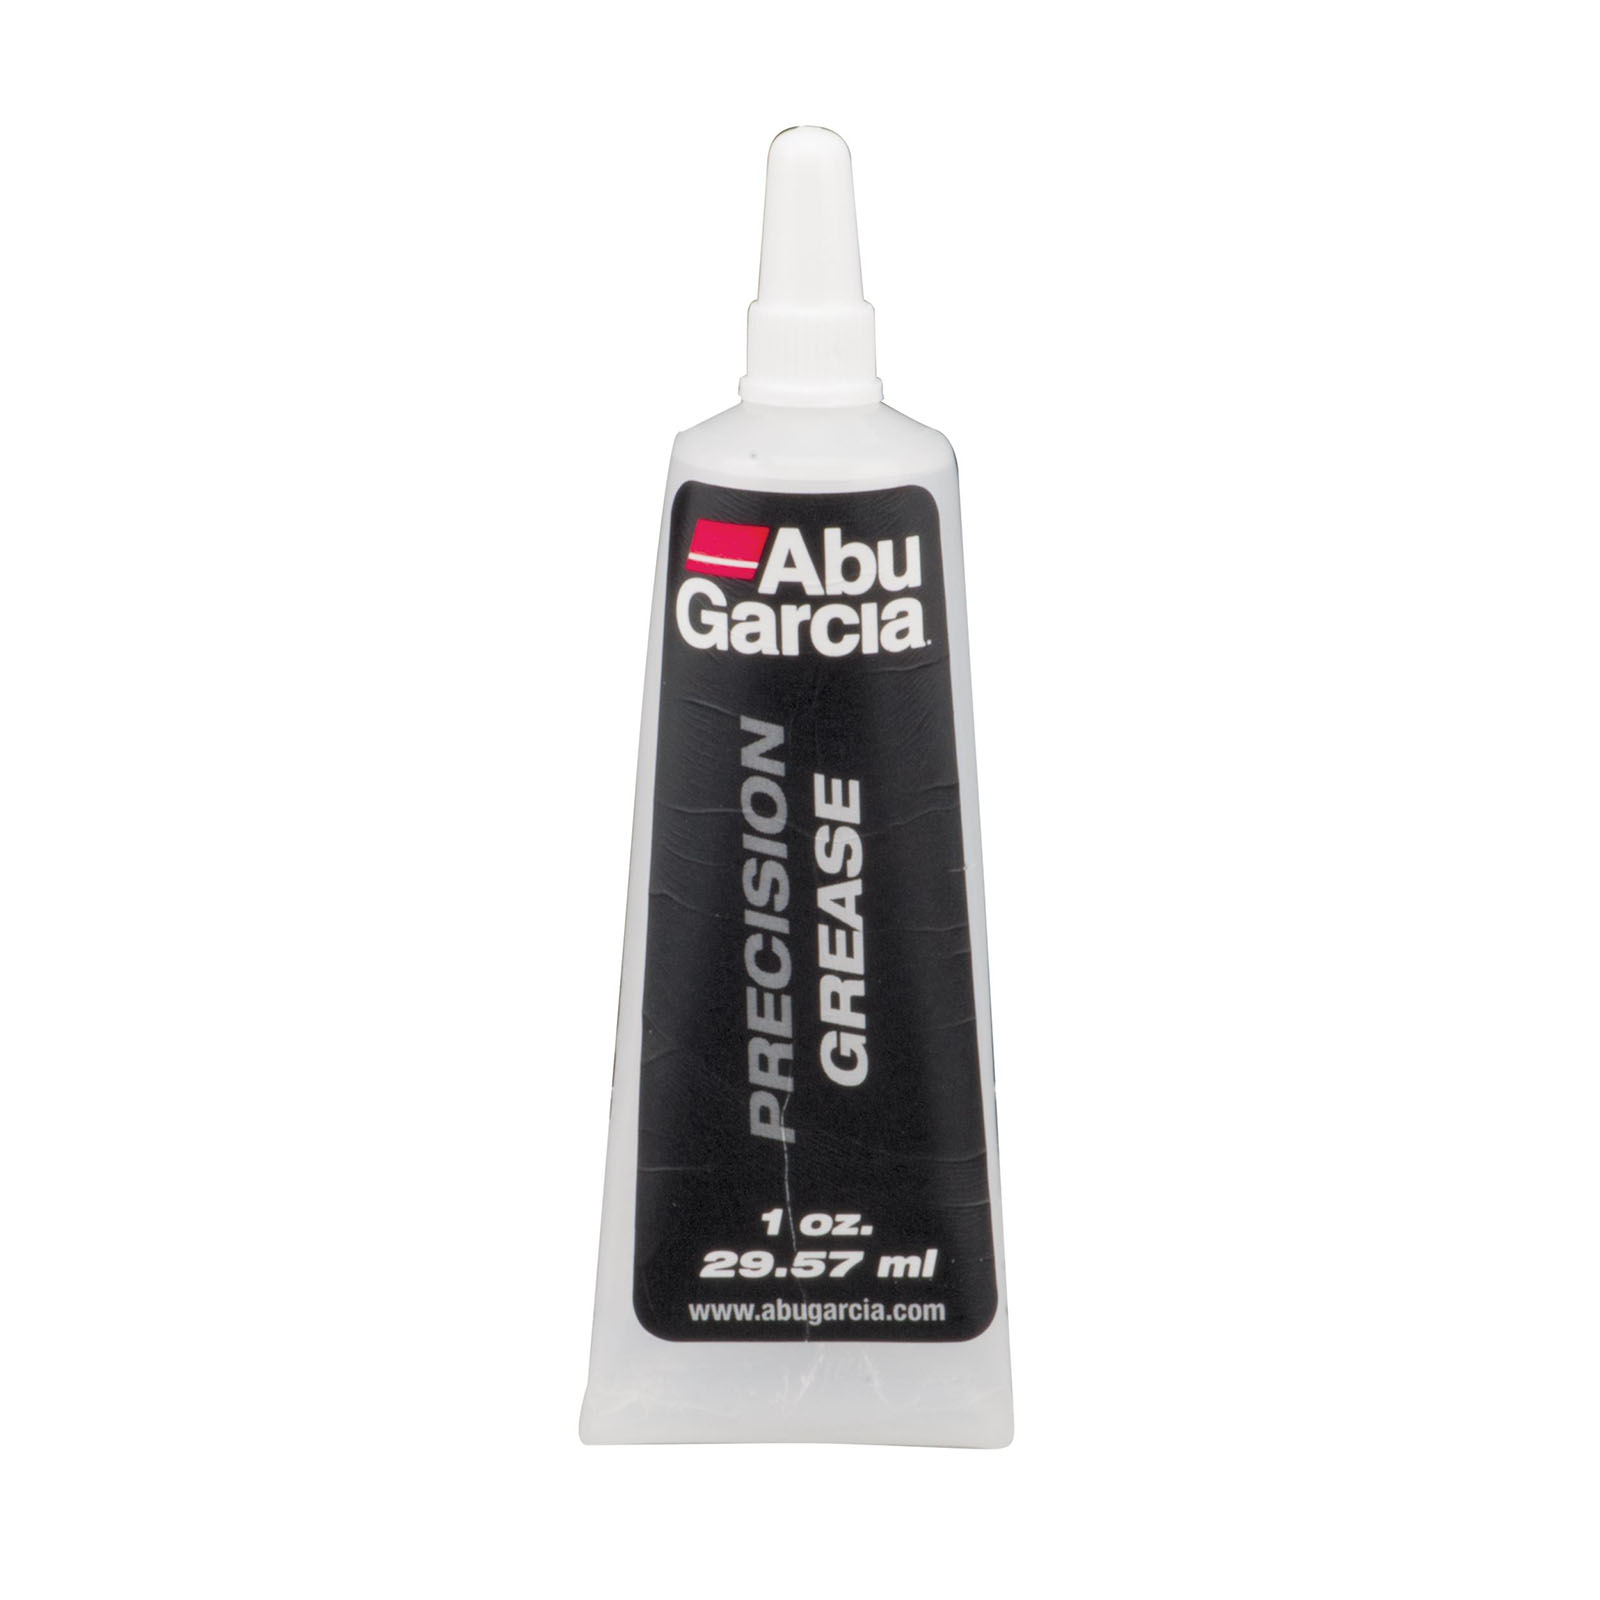 Abu Garcia Precision Reel Grease thumbnail